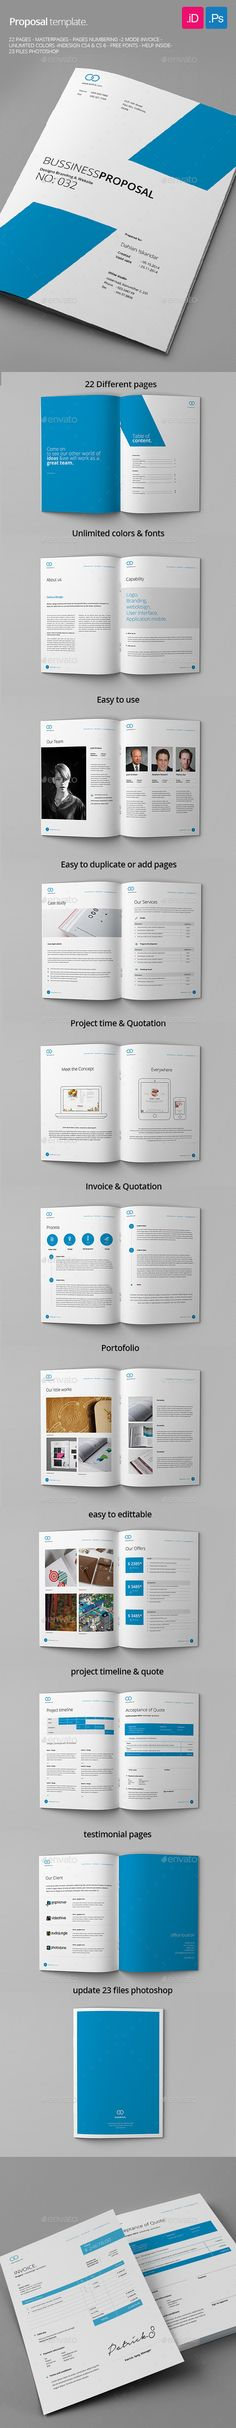 Proposal Proposals, Adobe indesign and Brochure template - download business proposal template